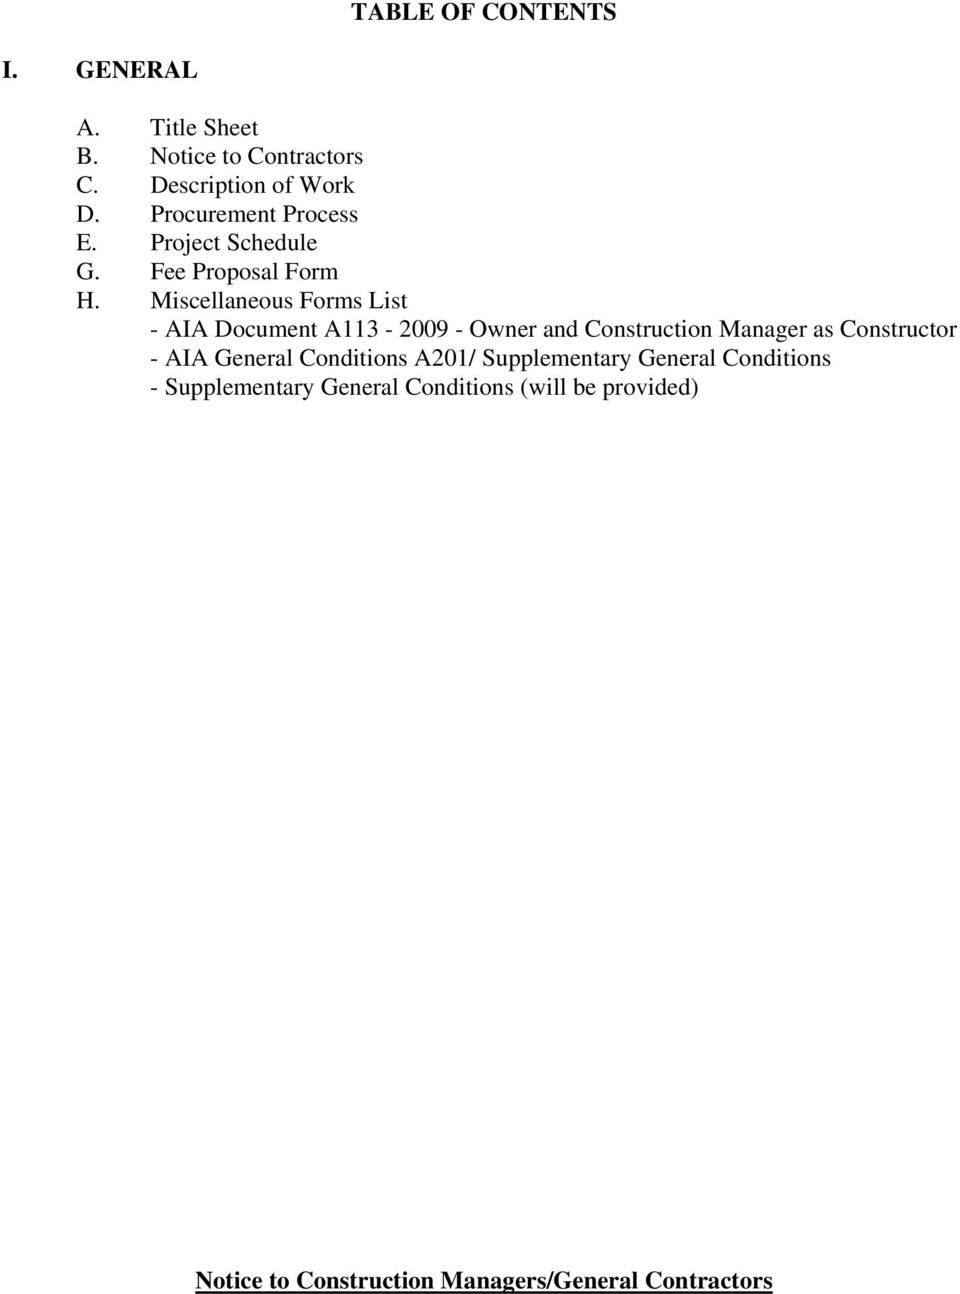 Miscellaneous Forms List - AIA Document A113-2009 - Owner and Construction Manager as Constructor - AIA